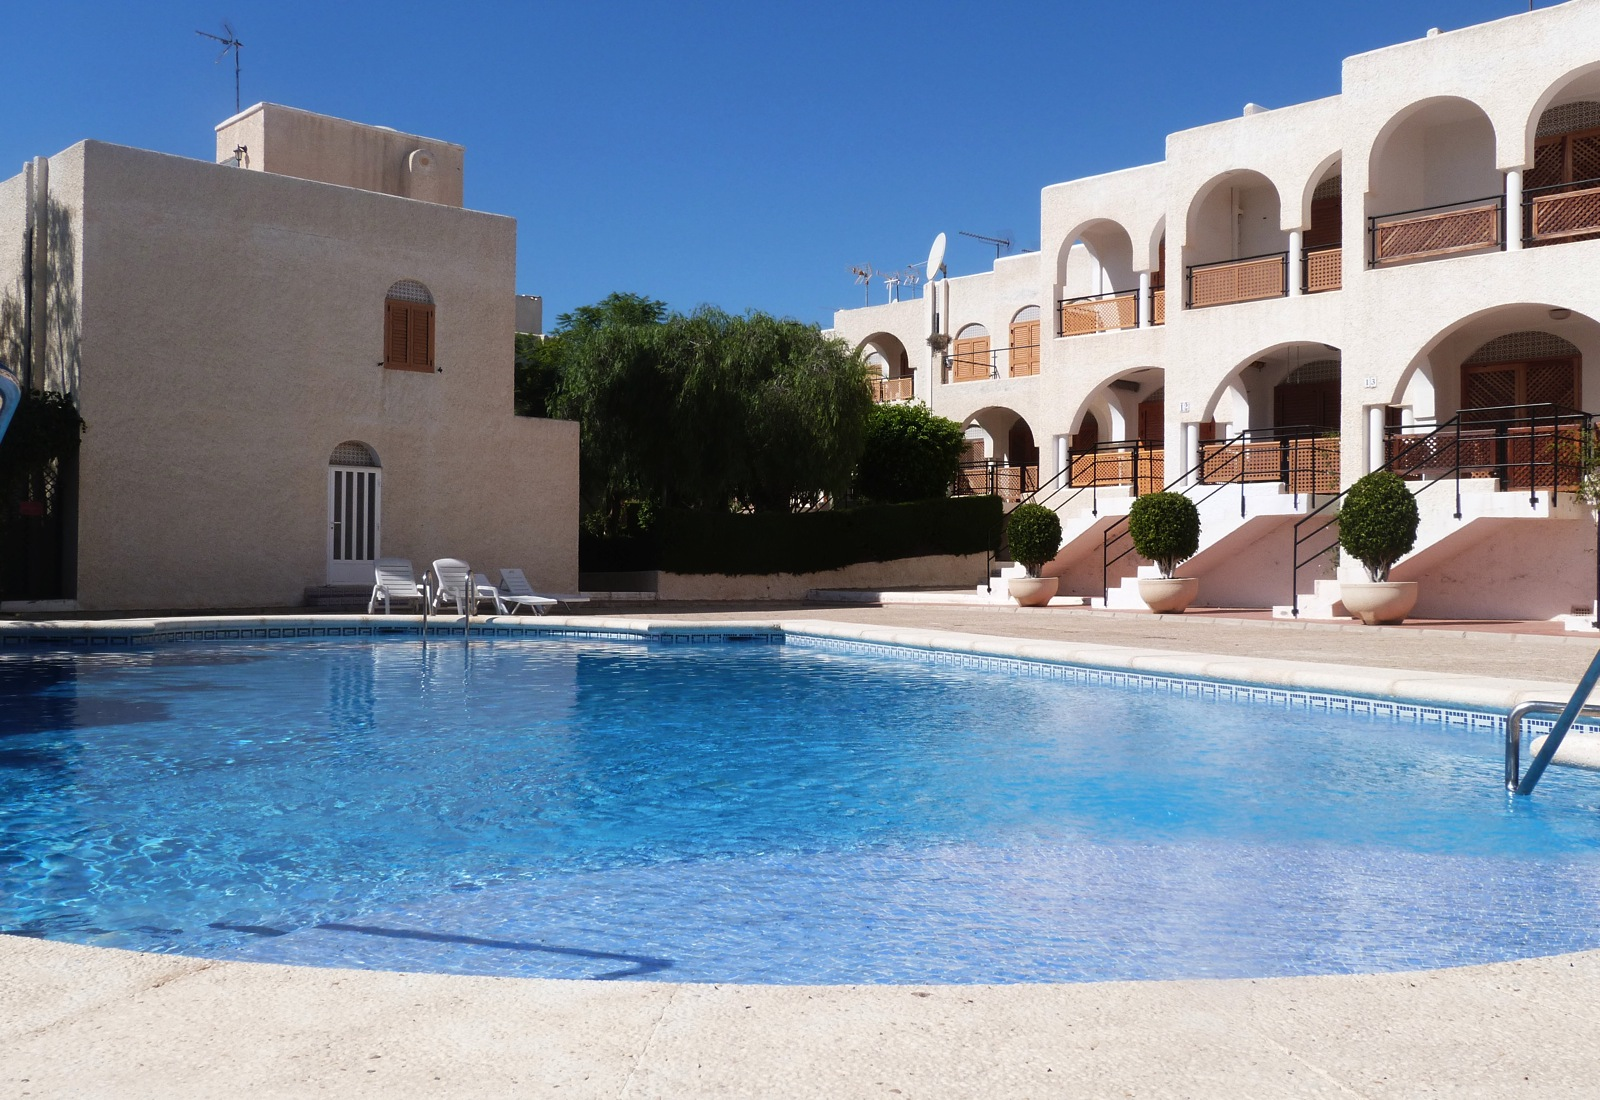 TOWNHOUSE, 3 BEDS, LOVELY COMMUNAL POOL